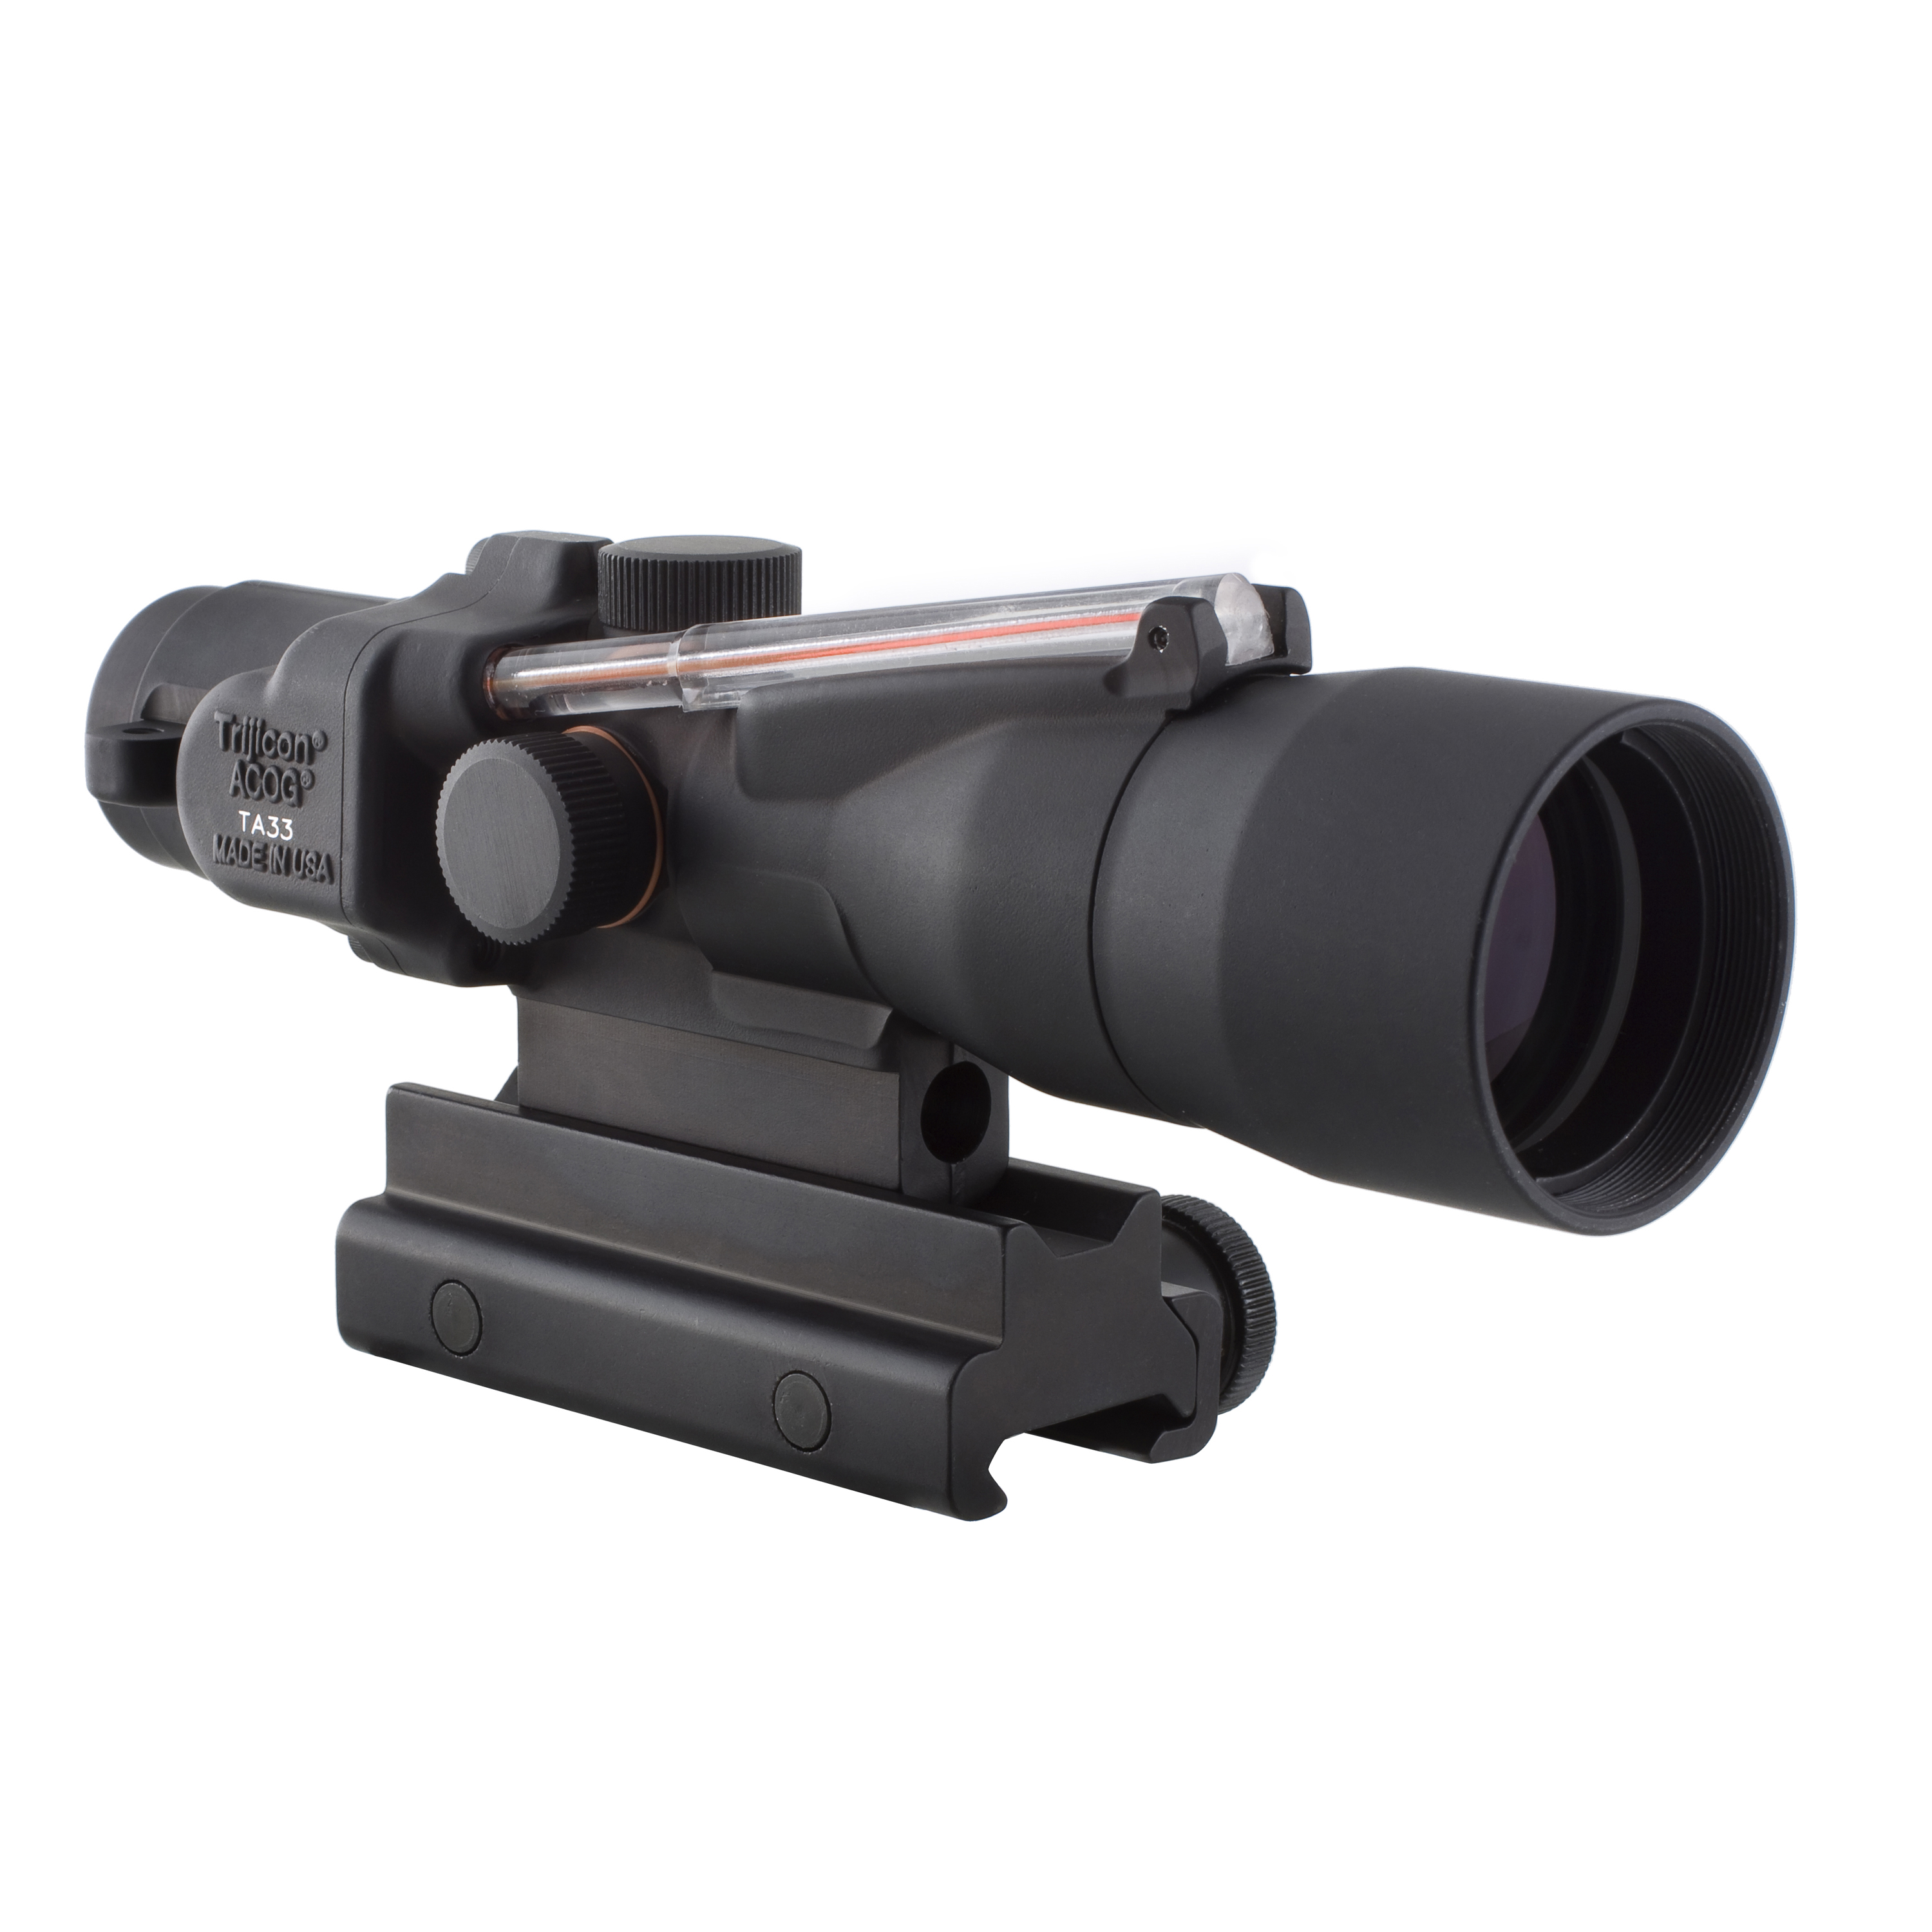 Trijicon ACOG 3x30mm Compact Dual Illuminated Scope Red Crosshair .300 Blackout 115 220gr Ball Reticle, Colt Knob... by Trijicon